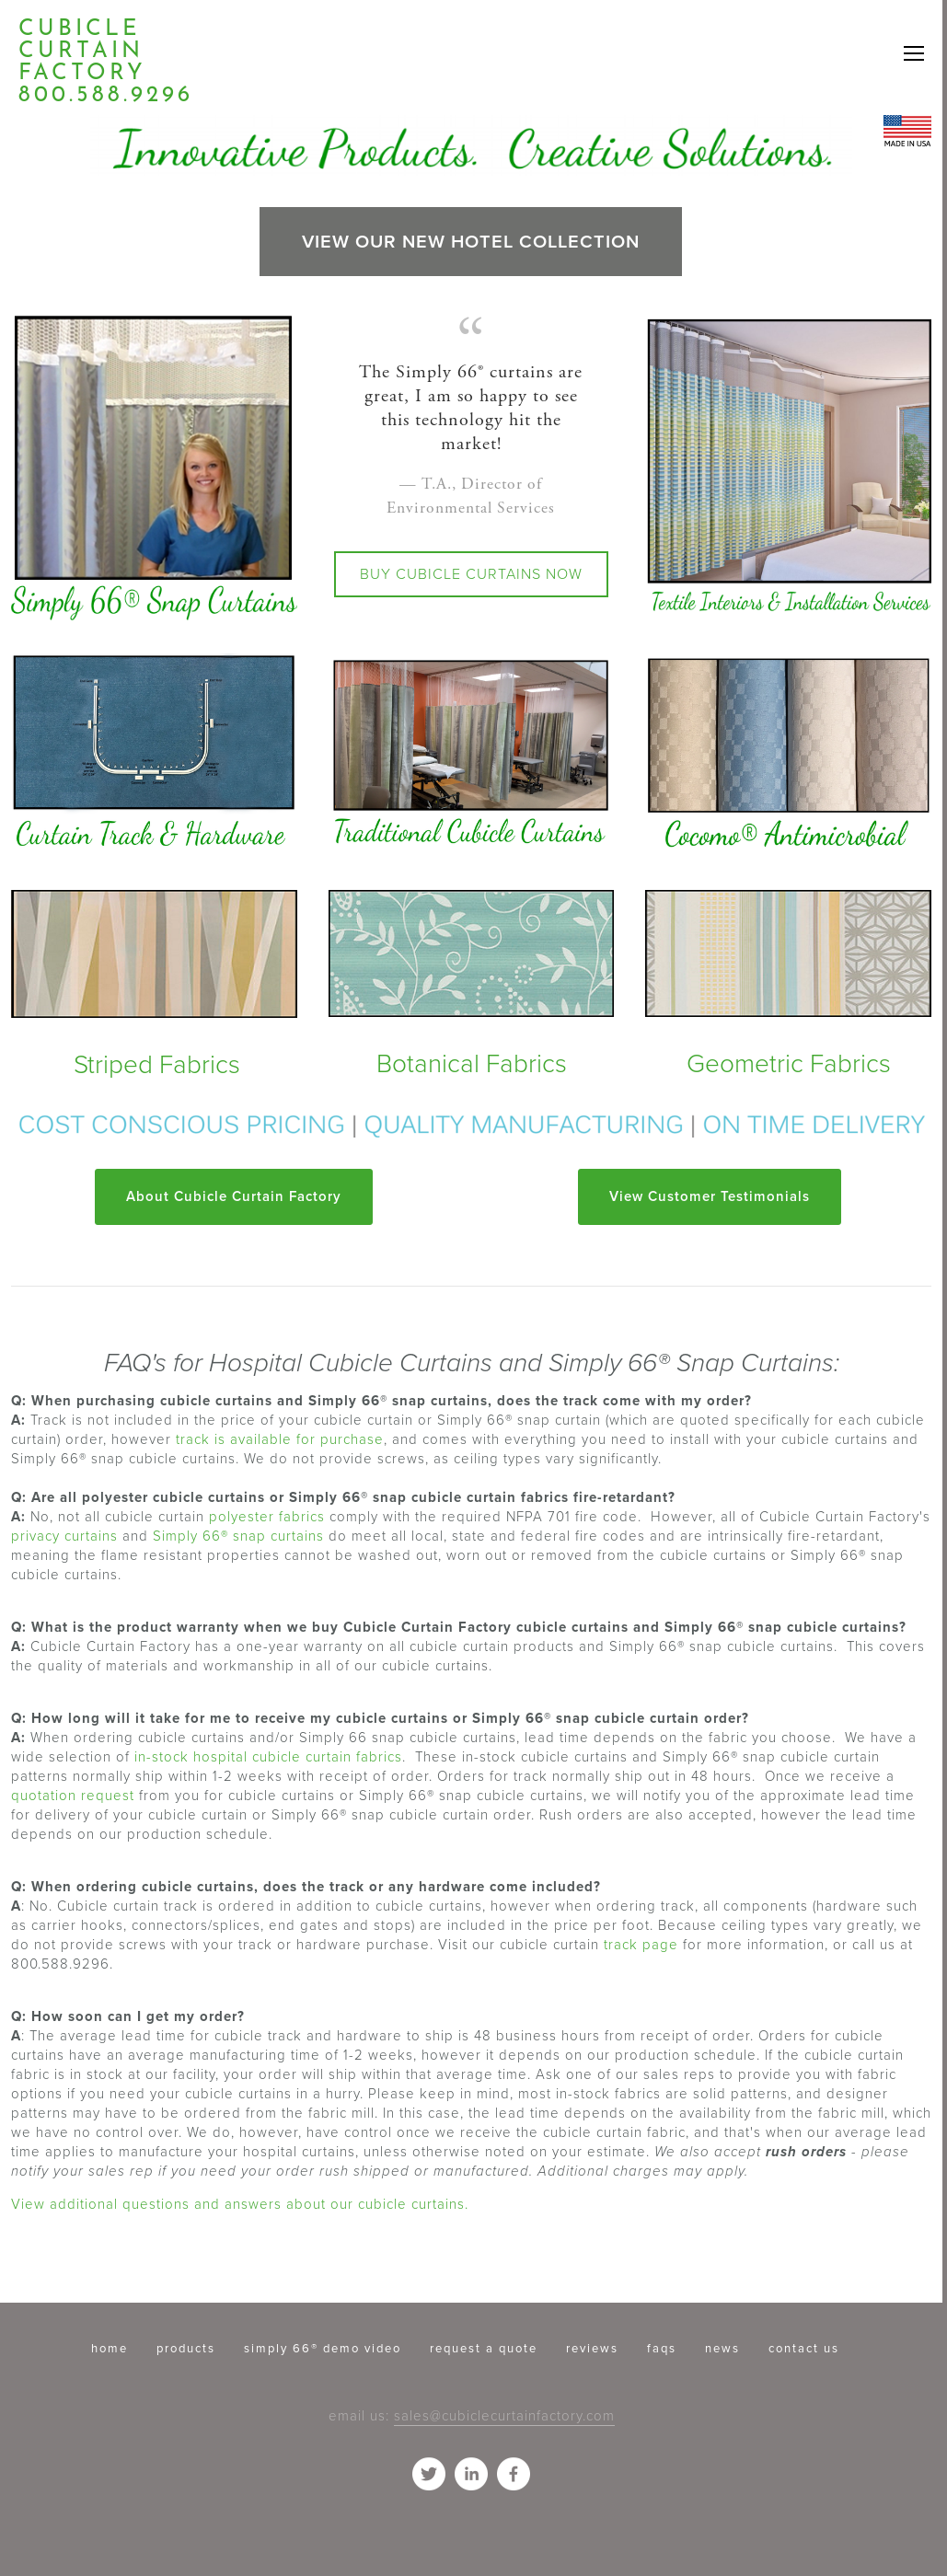 Cubicle Curtain Factory Website History